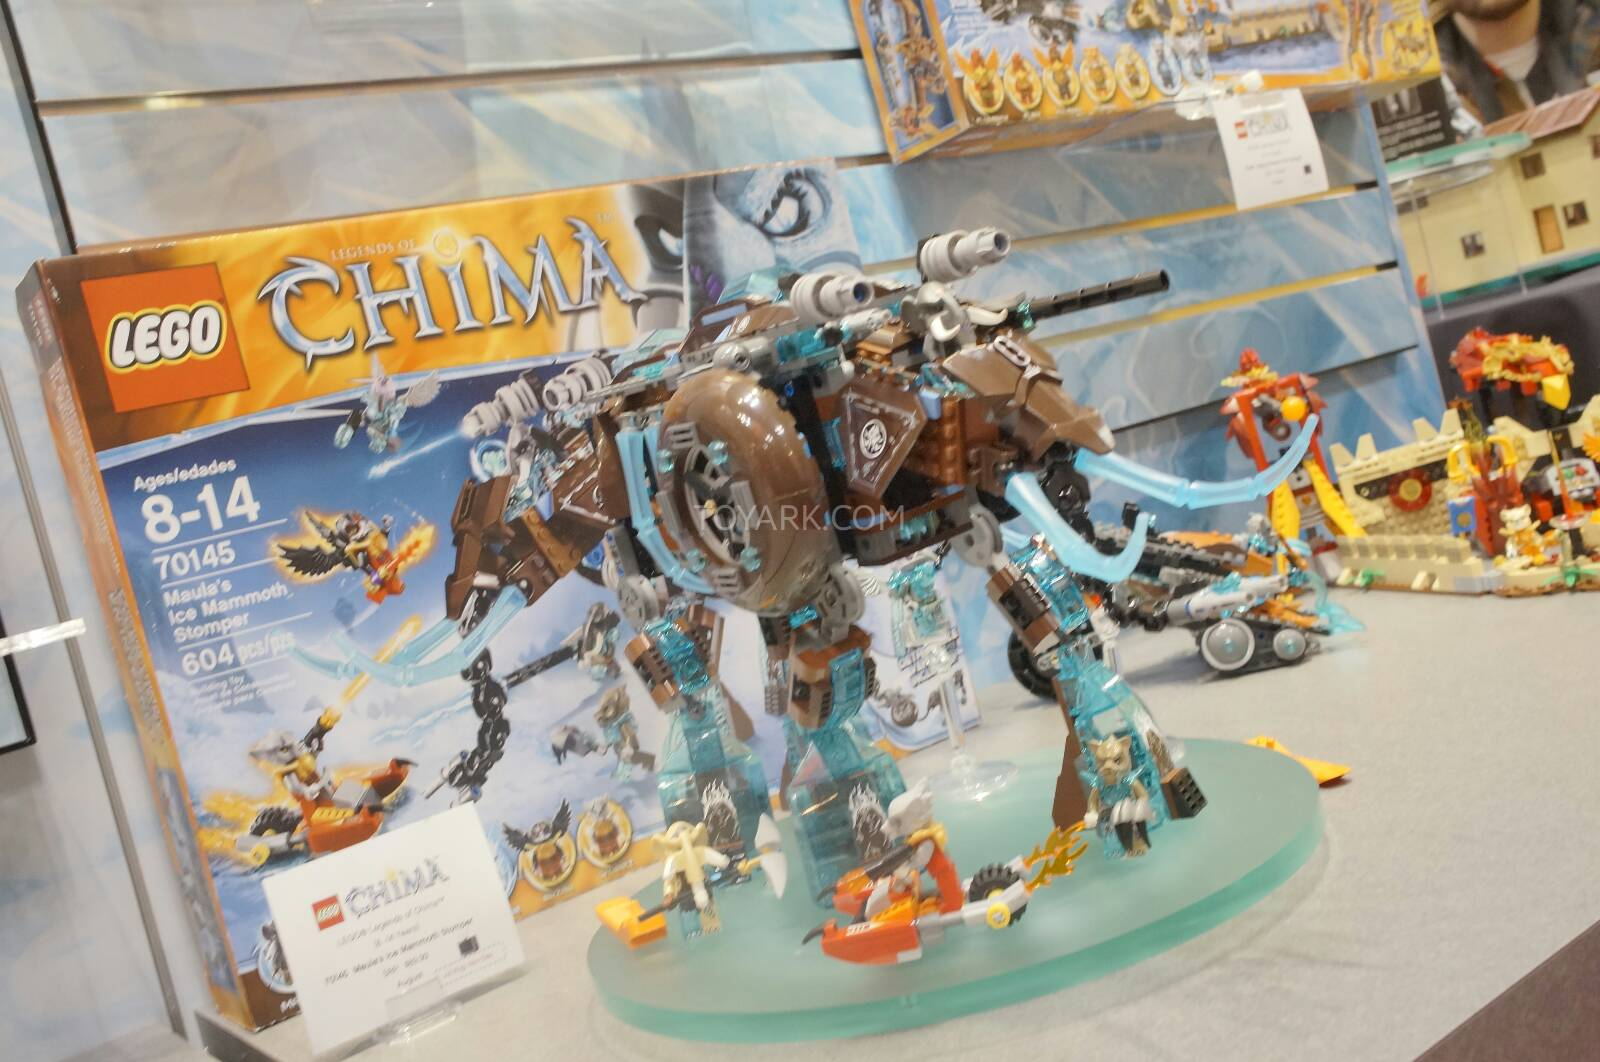 LEGO Legends of Chima Sets at the 2014 New York Toy Fair